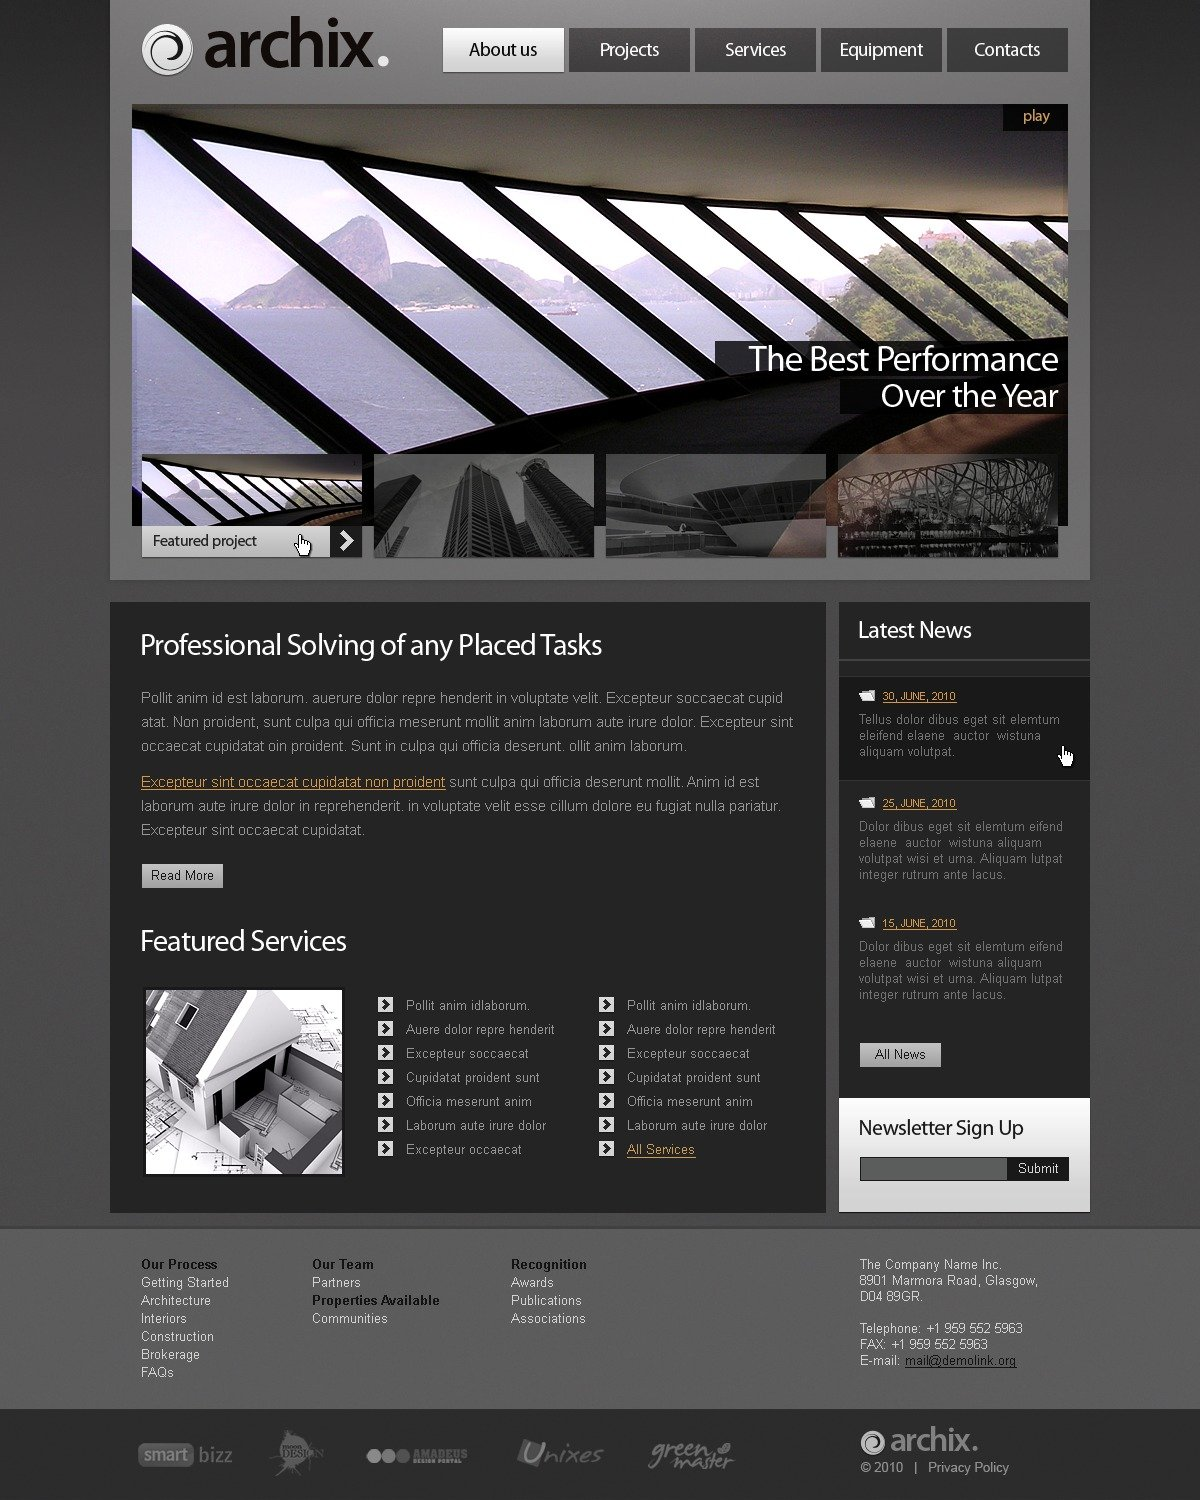 The Archix Architecture Company PSD Design 54386, one of the best PSD templates of its kind (architecture, flash 8, wide), also known as archix architecture company PSD template, buildings PSD template, technology PSD template, innovation PSD template, skyscrapers PSD template, projects PSD template, constructions PSD template, houses PSD template, work PSD template, team PSD template, strategy PSD template, services PSD template, support PSD template, planning solutions design PSD template, non-standard PSD template, creative ideas PSD template, catalogue PSD template, windows PSD template, doors PSD template, equipme and related with archix architecture company, buildings, technology, innovation, skyscrapers, projects, constructions, houses, work, team, strategy, services, support, planning solutions design, non-standard, creative ideas, catalogue, windows, doors, equipme, etc.